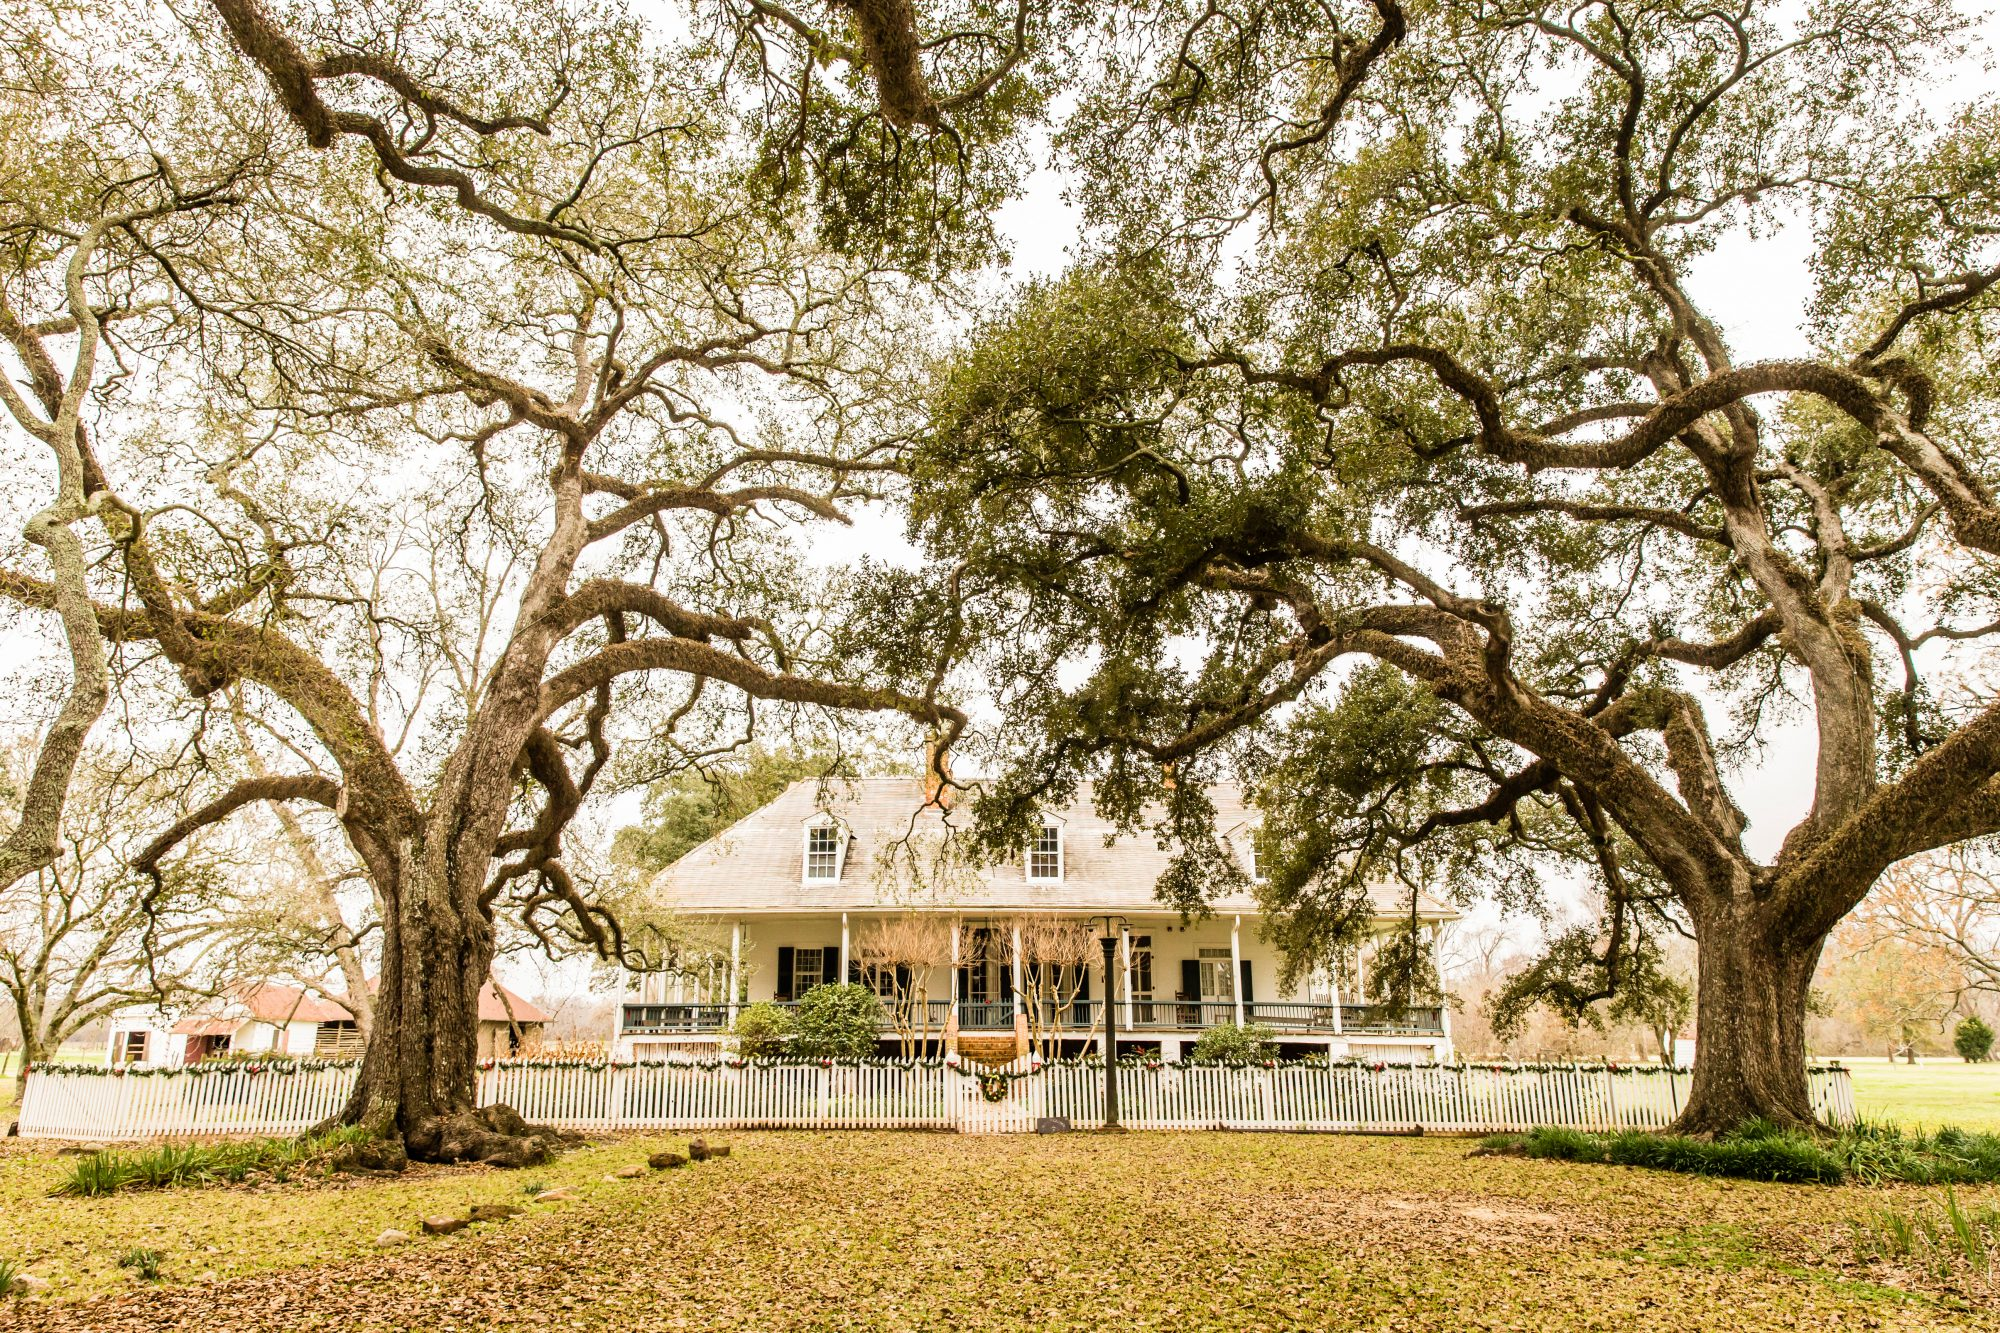 Louisiana: Natchitoches